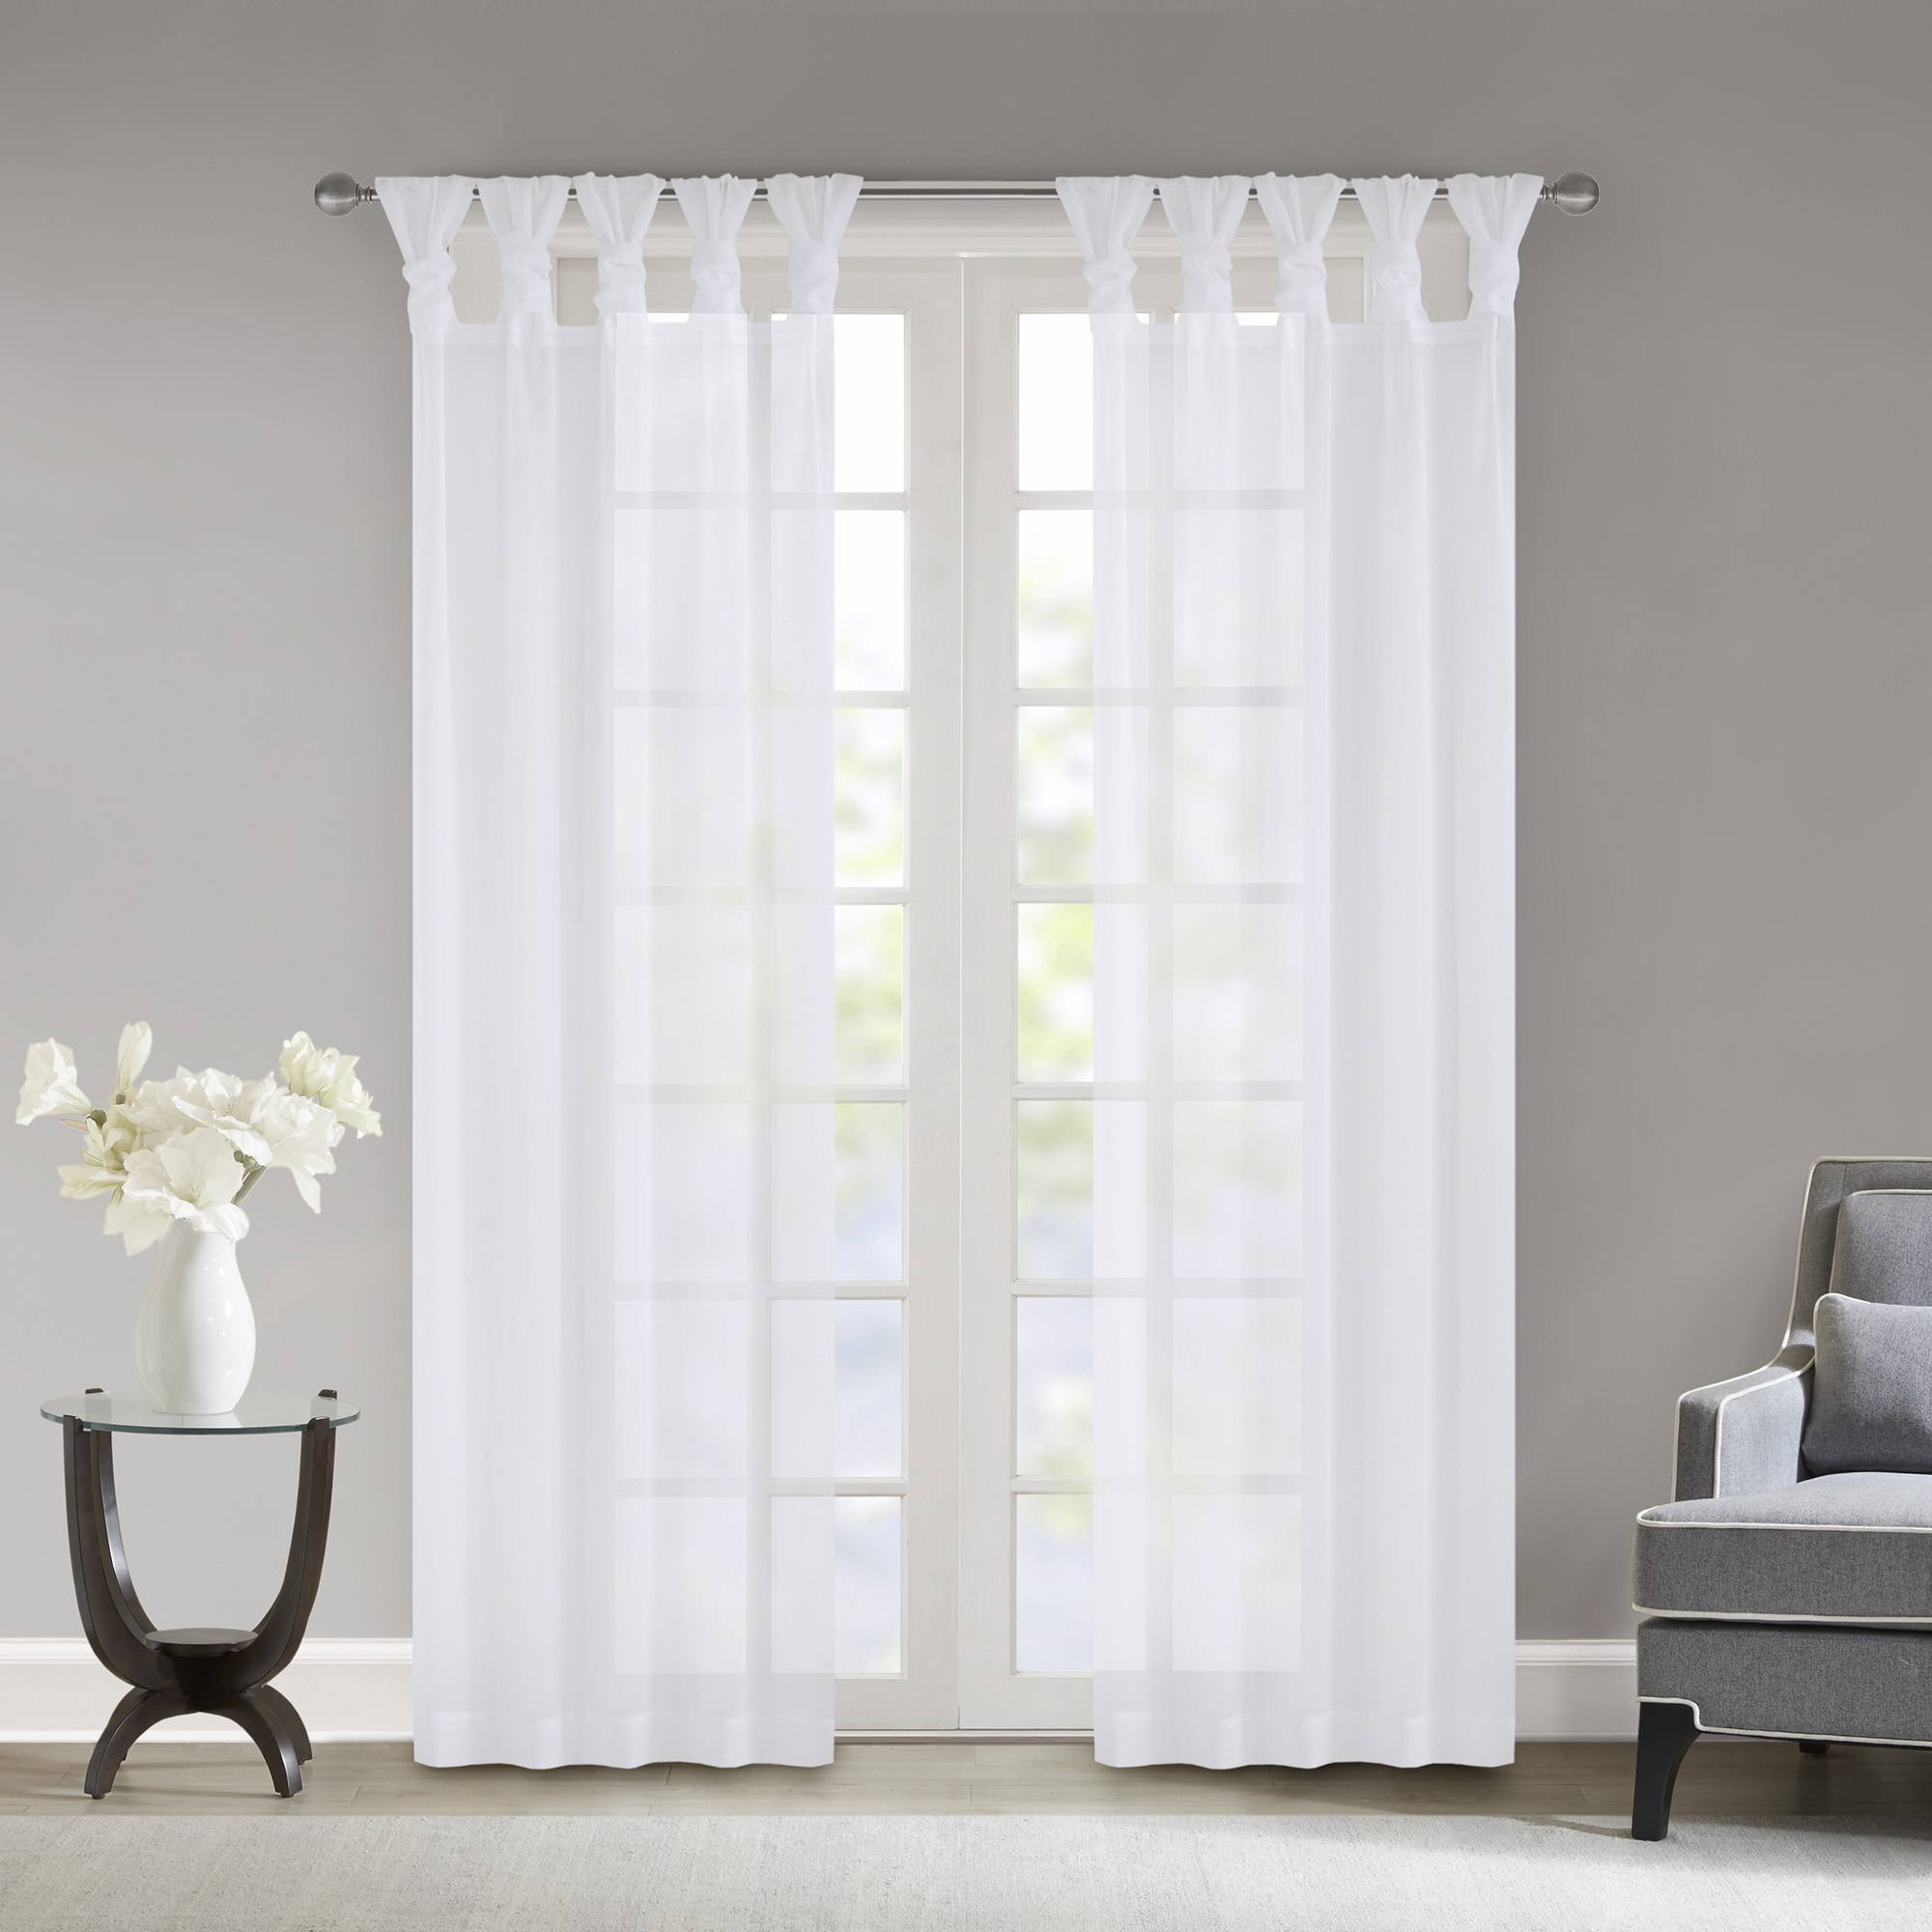 Madison Park Elowen White Twisted Tab Voile Sheer Curtain Inside Elowen White Twist Tab Voile Sheer Curtain Panel Pairs (View 10 of 20)